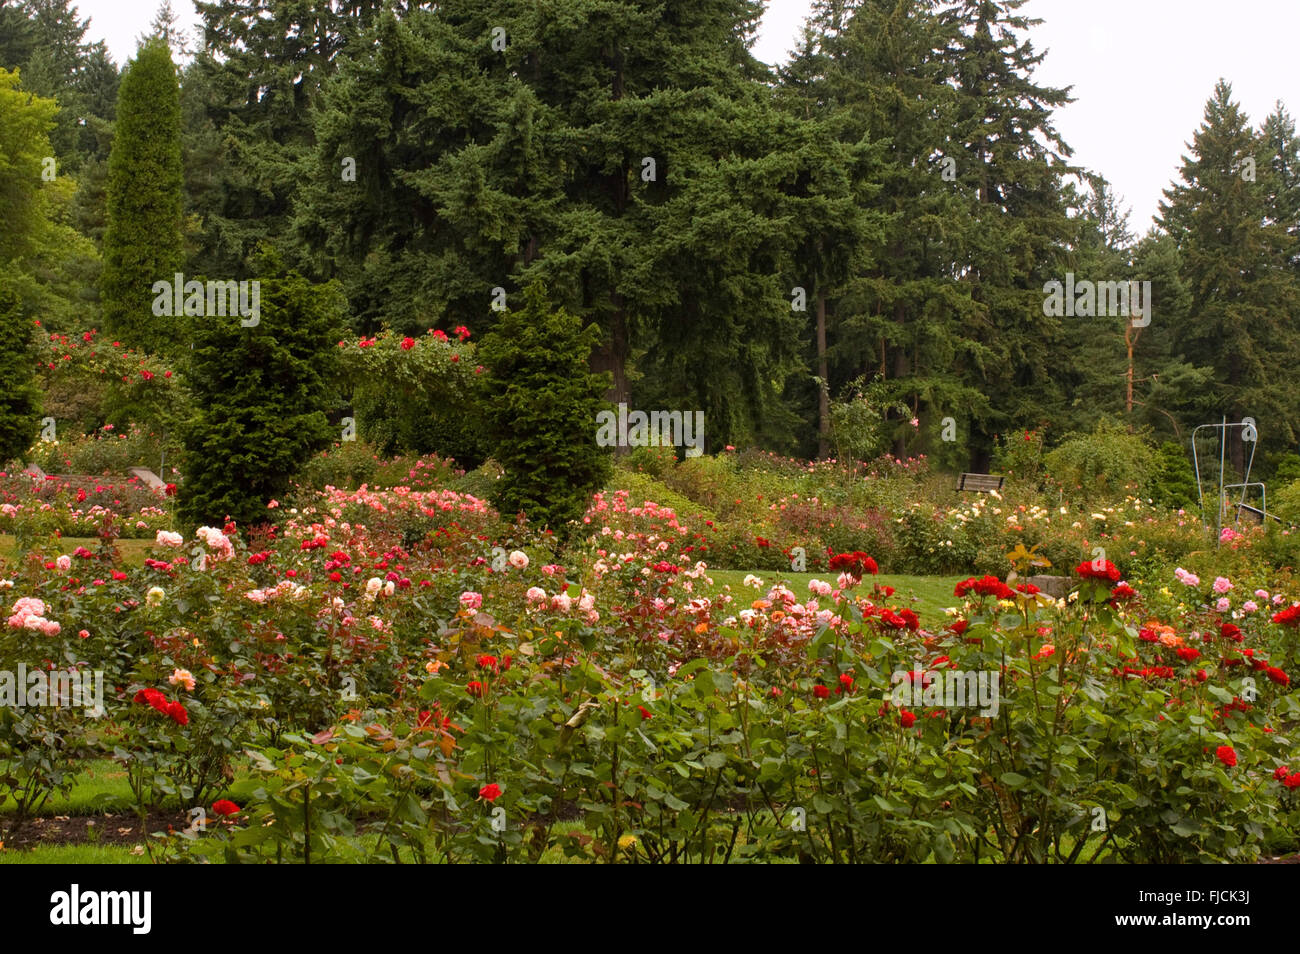 Mass Planting Stock Photos & Mass Planting Stock Images - Page 2 - Alamy